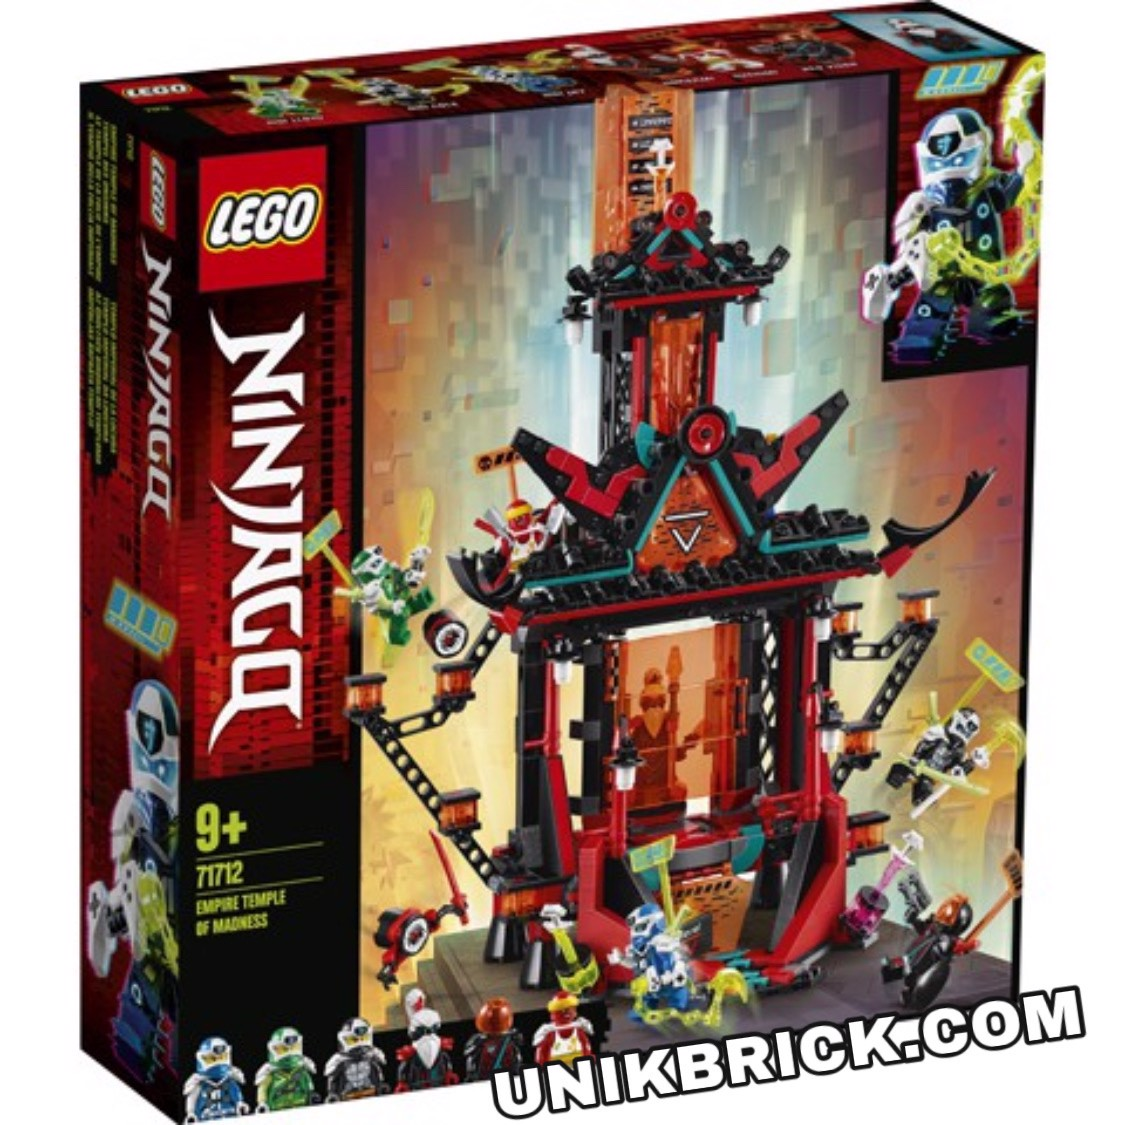 [CÓ HÀNG] LEGO Ninjago 71712 Empire Temple of Madness